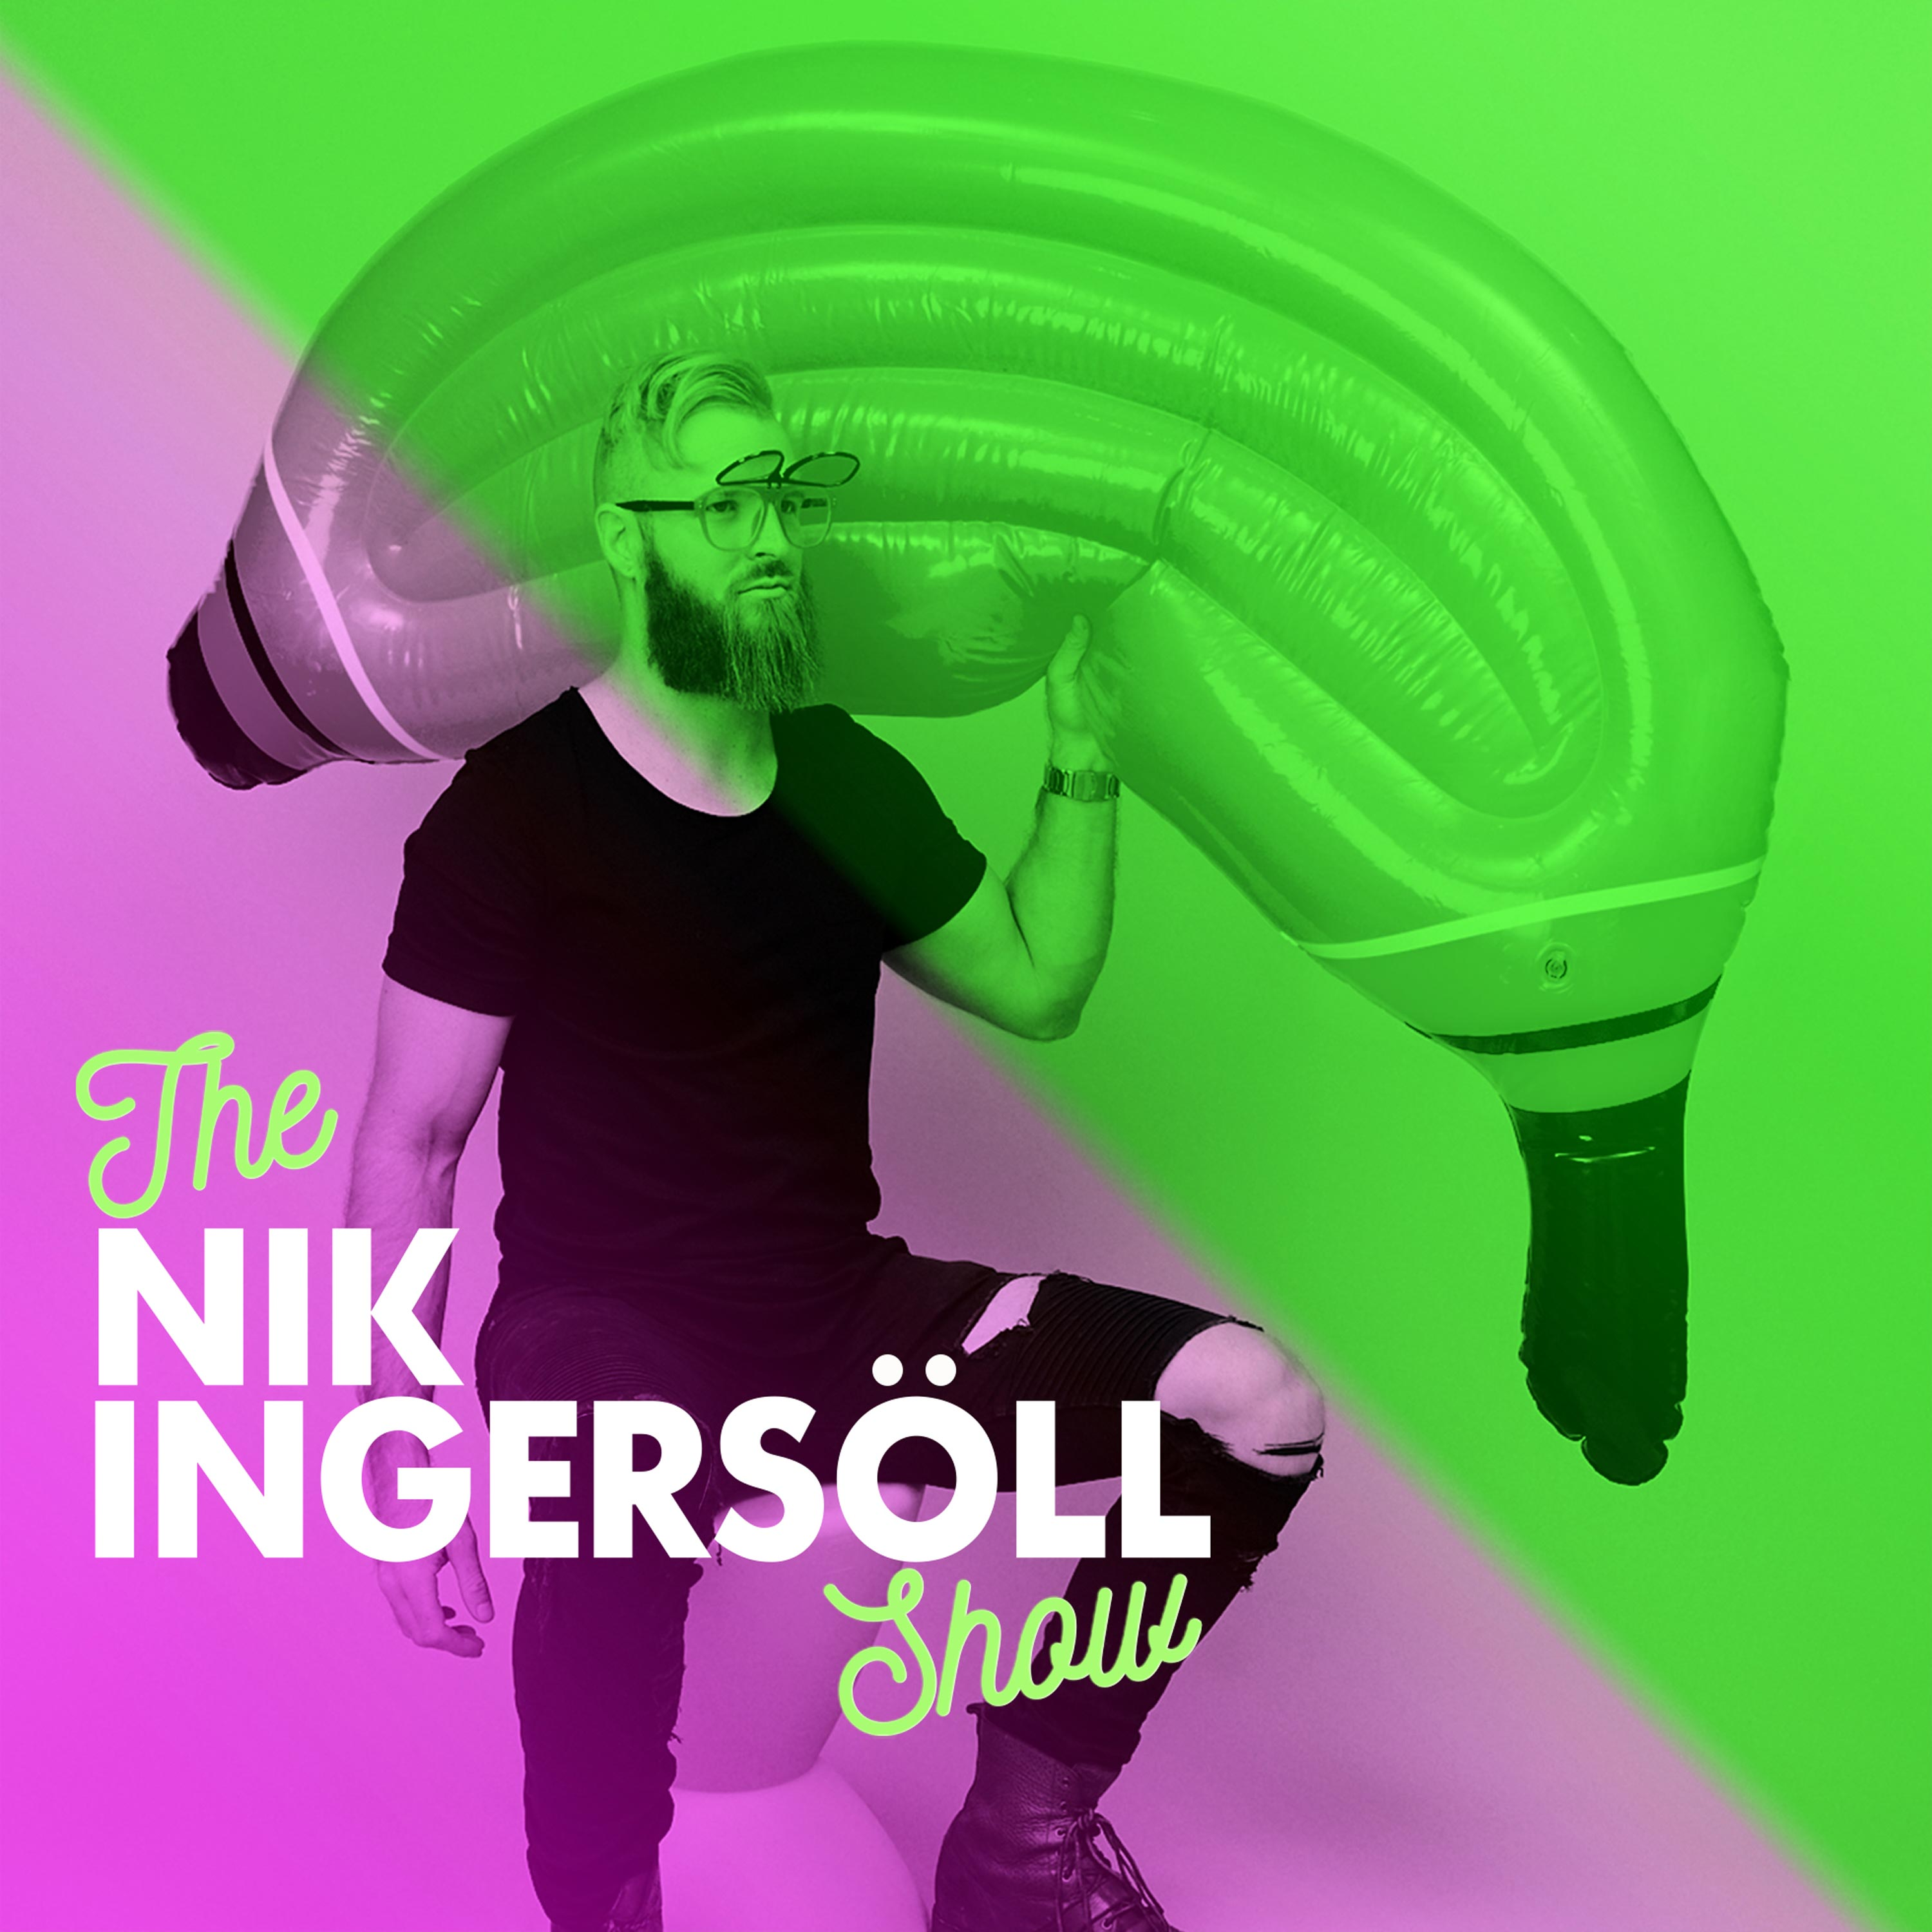 The Nik Ingersoll Show